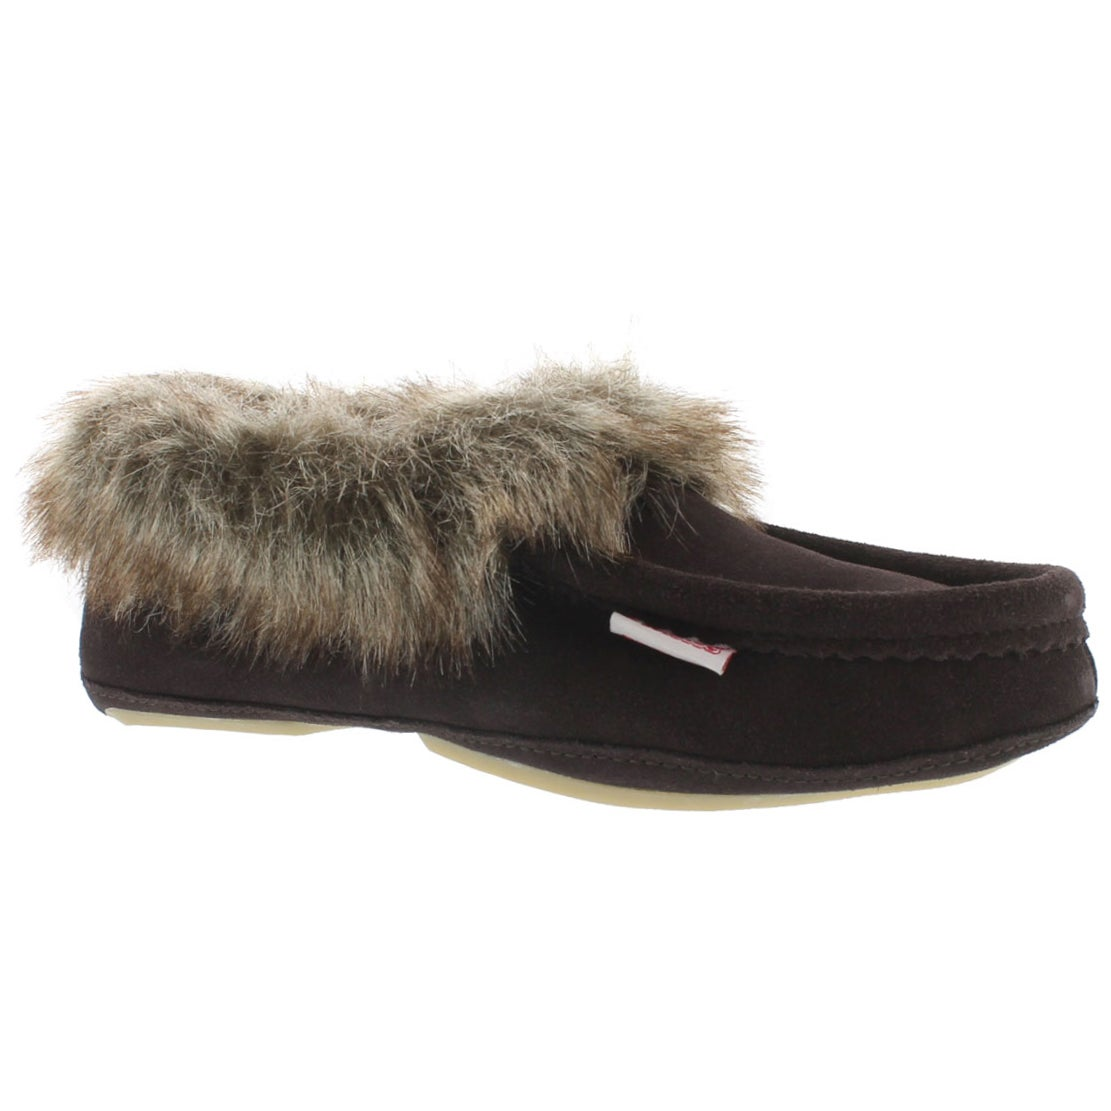 Women's CUTE FAUX U brown moccasins